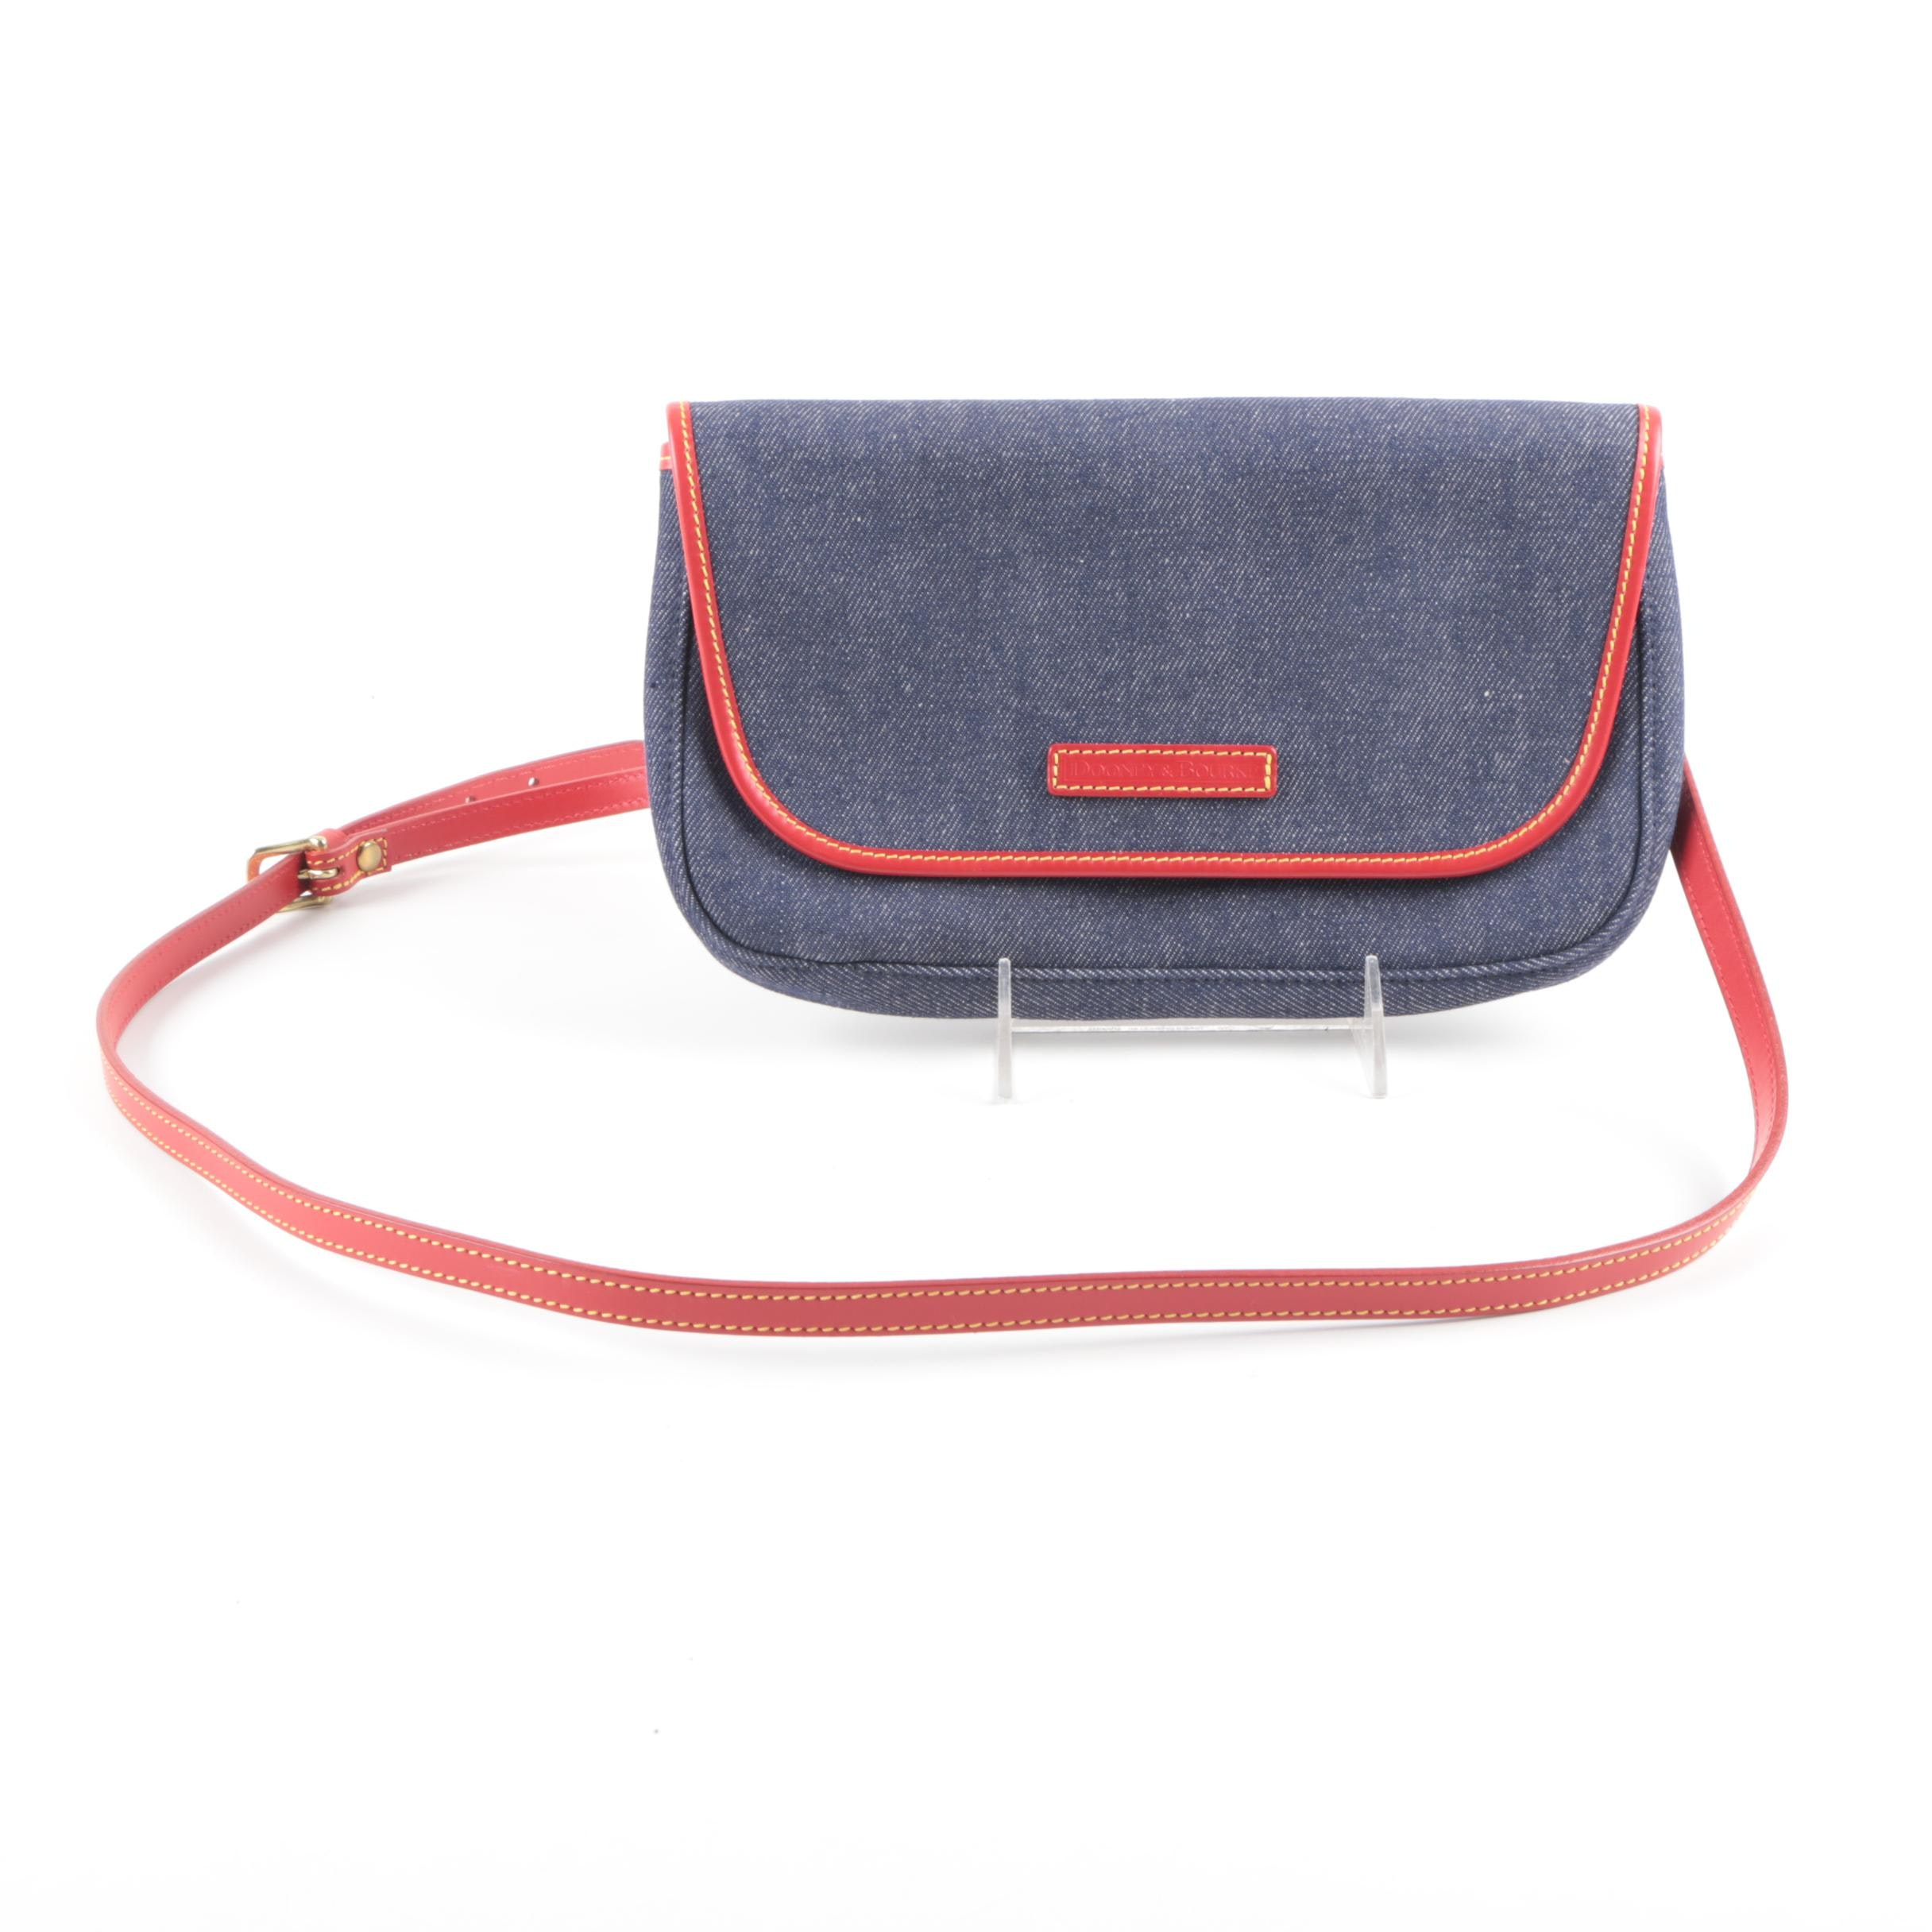 Dooney & Bourke Denim and Leather Handbag